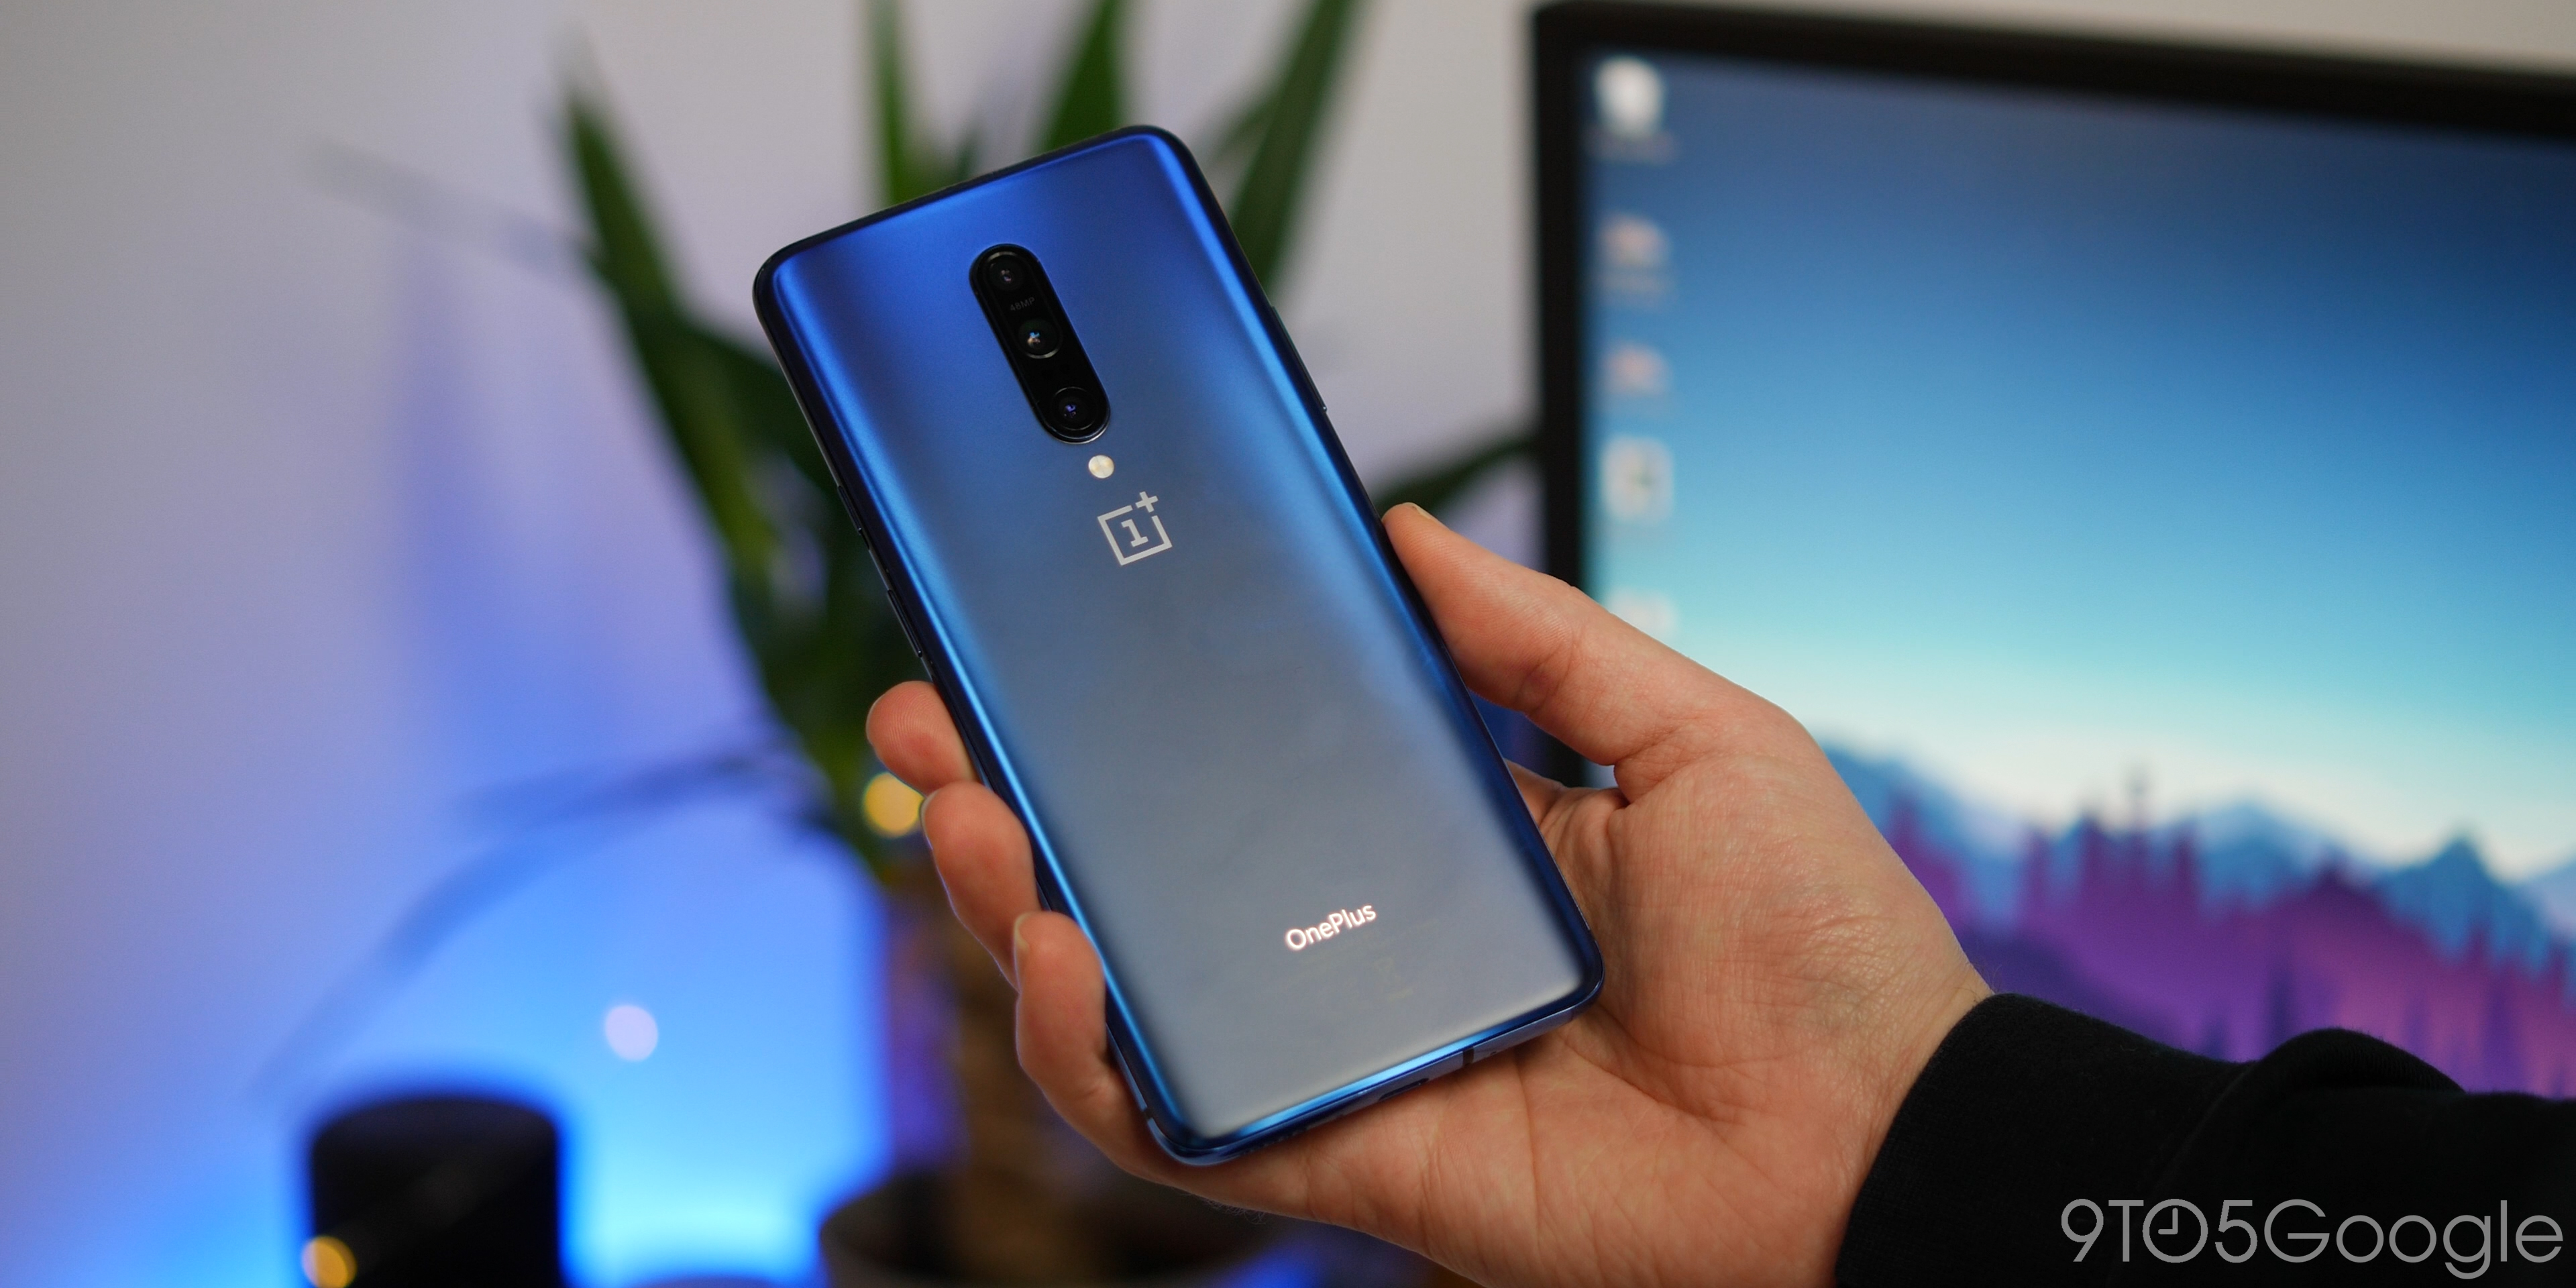 OnePlus 7 Pro hardware and design